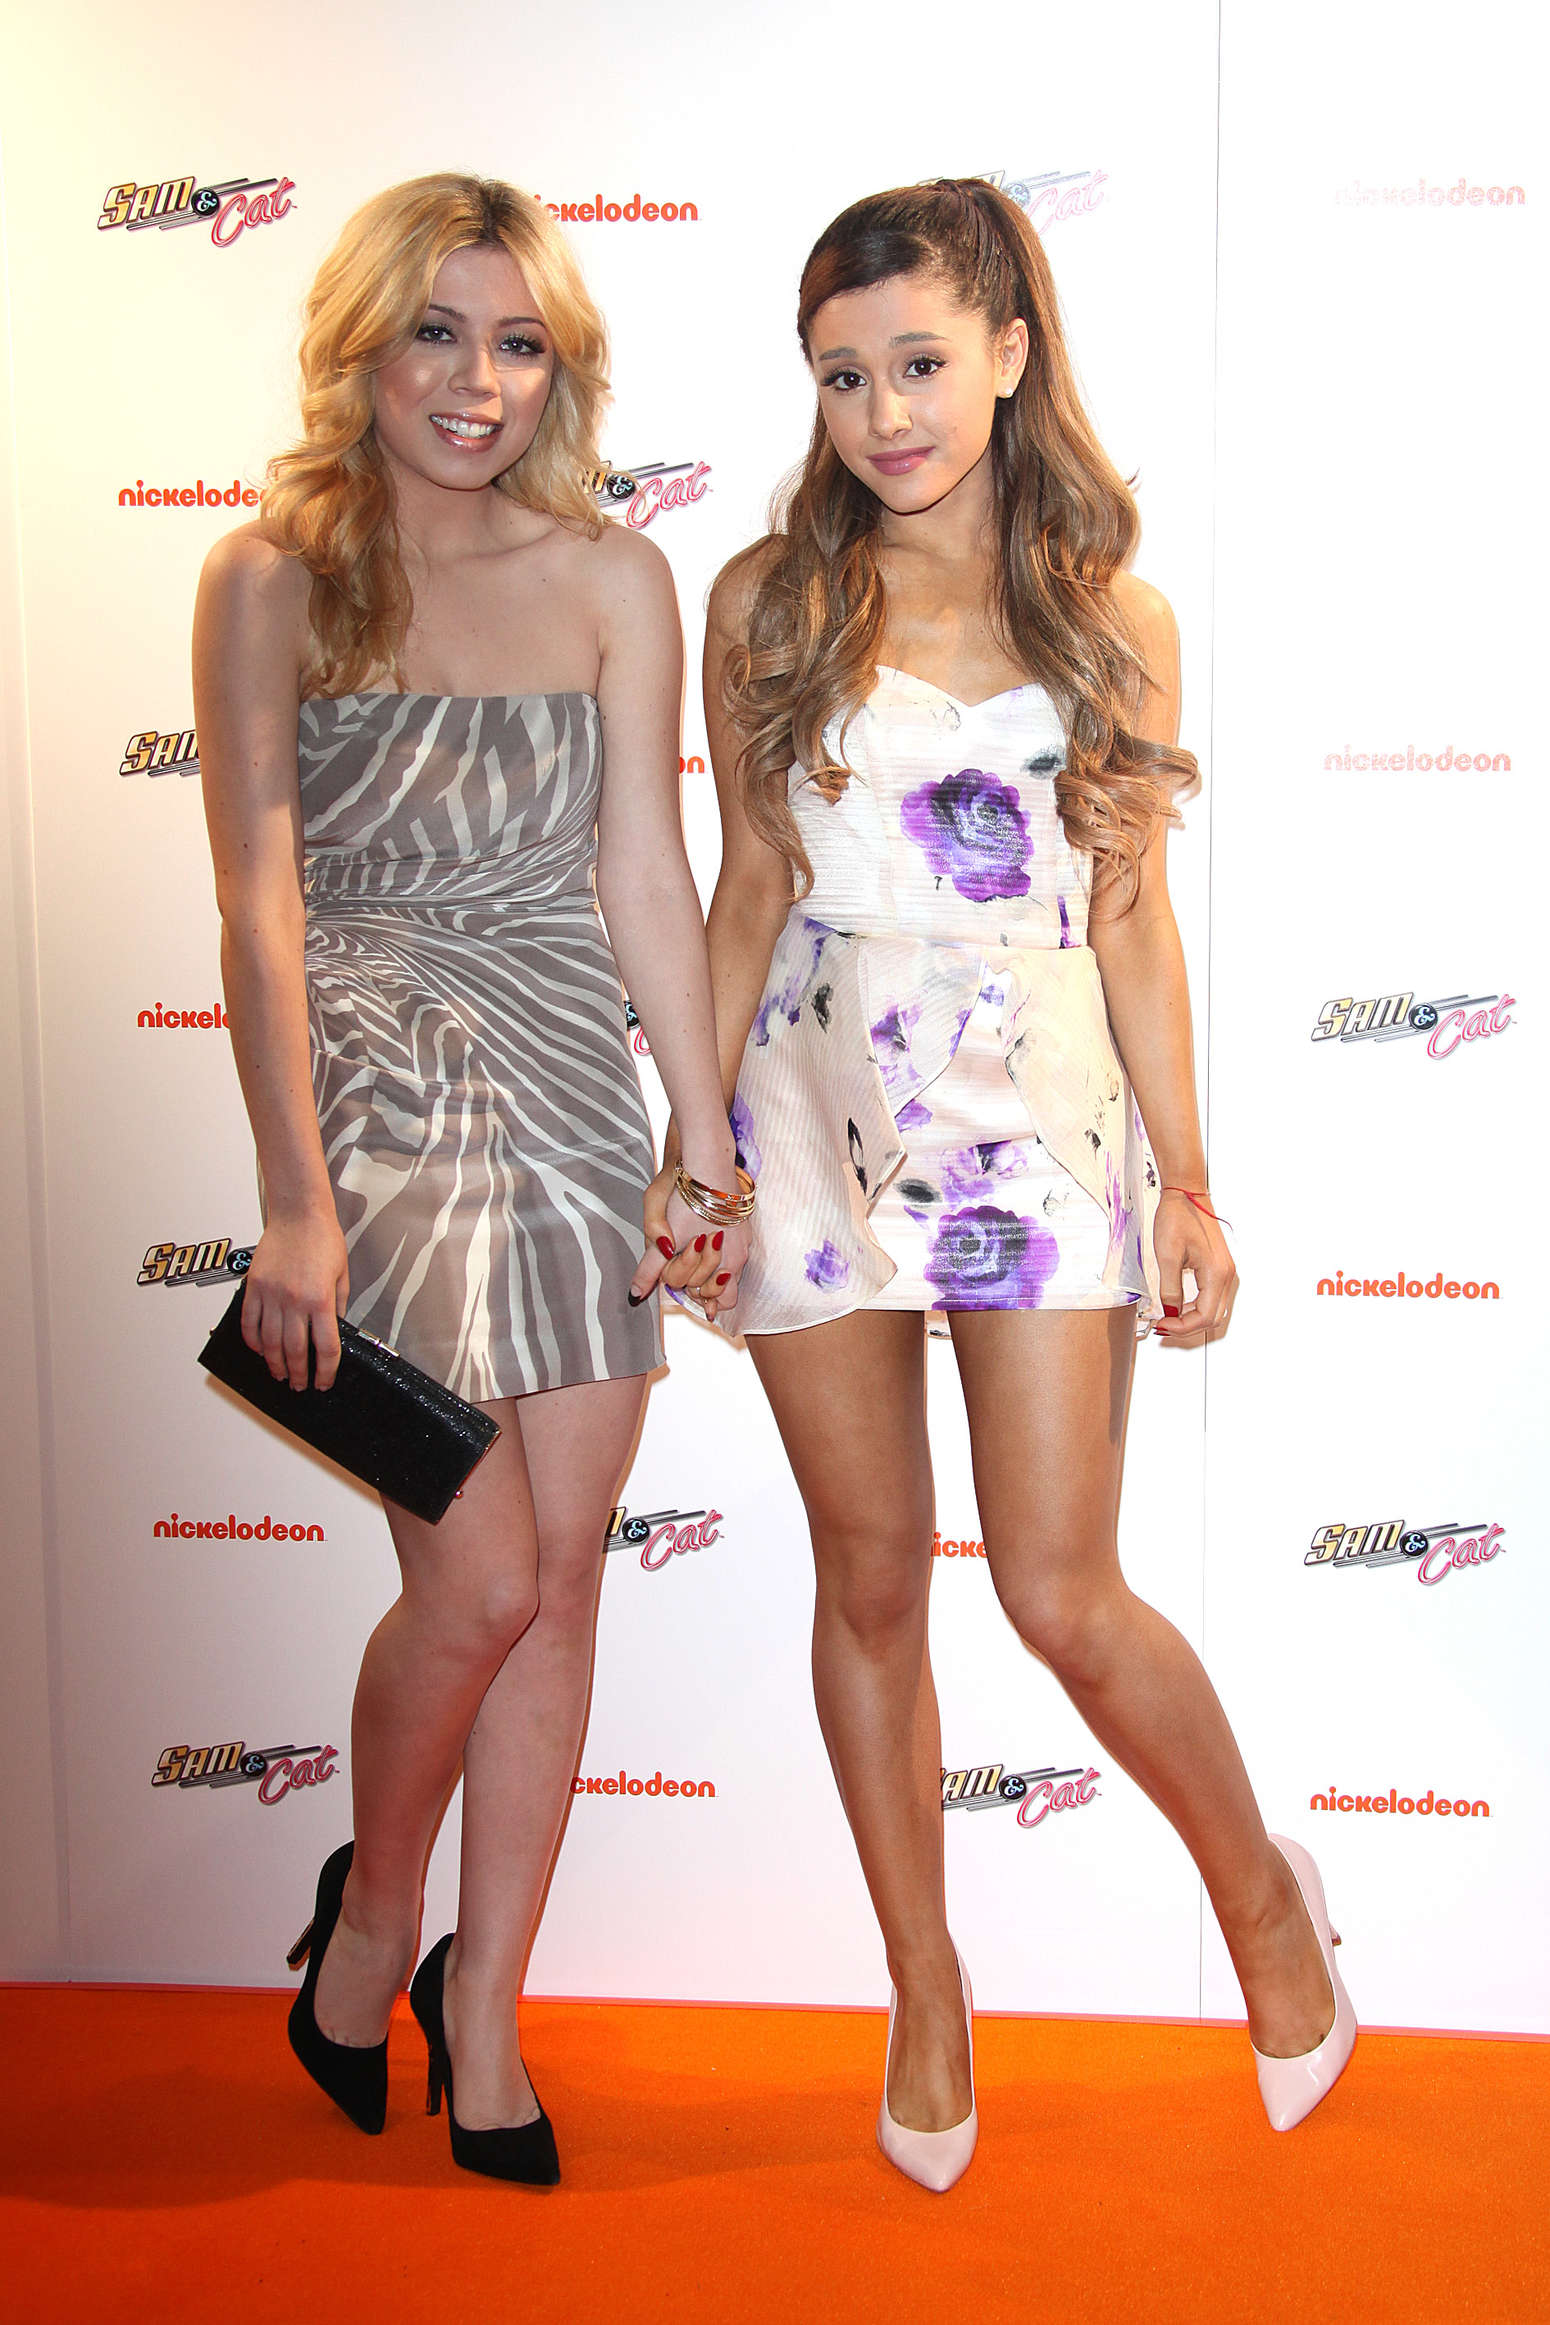 Je Jennette Mccurdy Bedroom Pics - Sam and cat bedroom holiibags